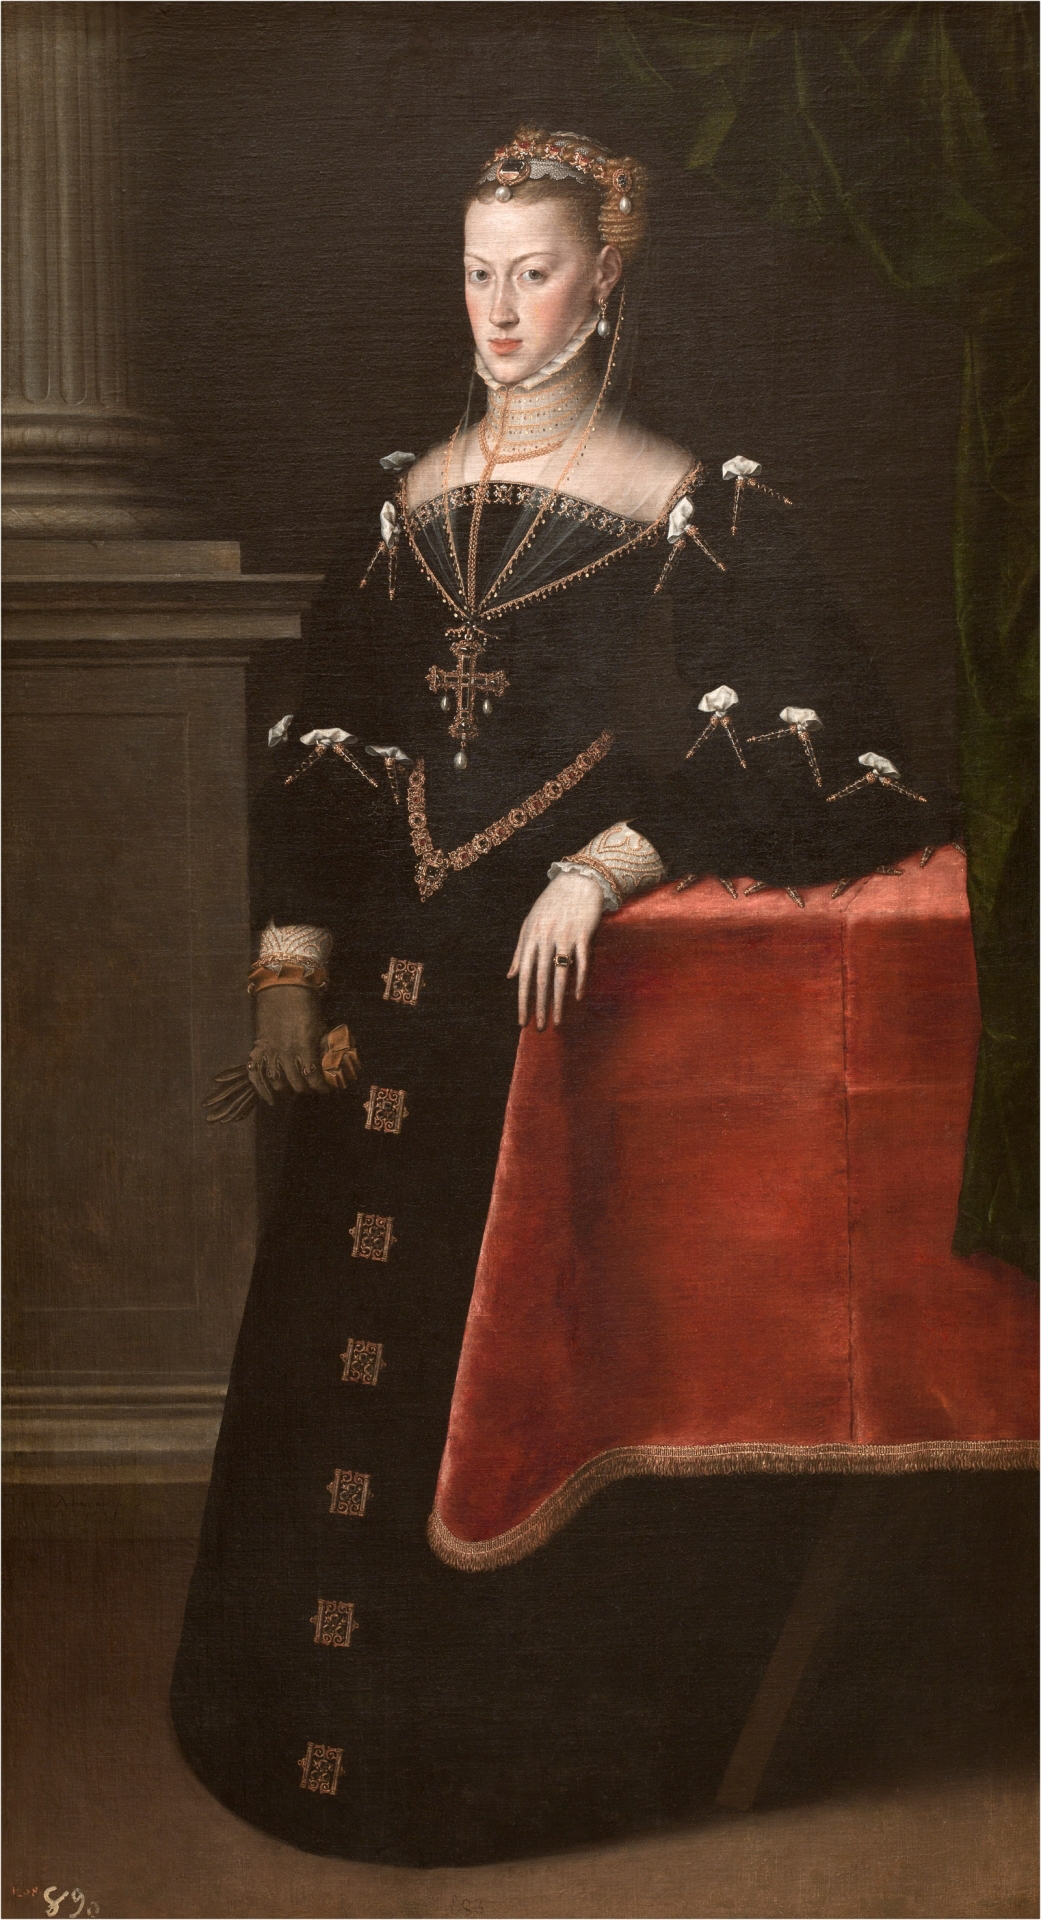 Emperess María de Austria, wife of Maximilian II, oil on canvas, Antionio Moro, 1551. (Image courtesy of the Prado Museum